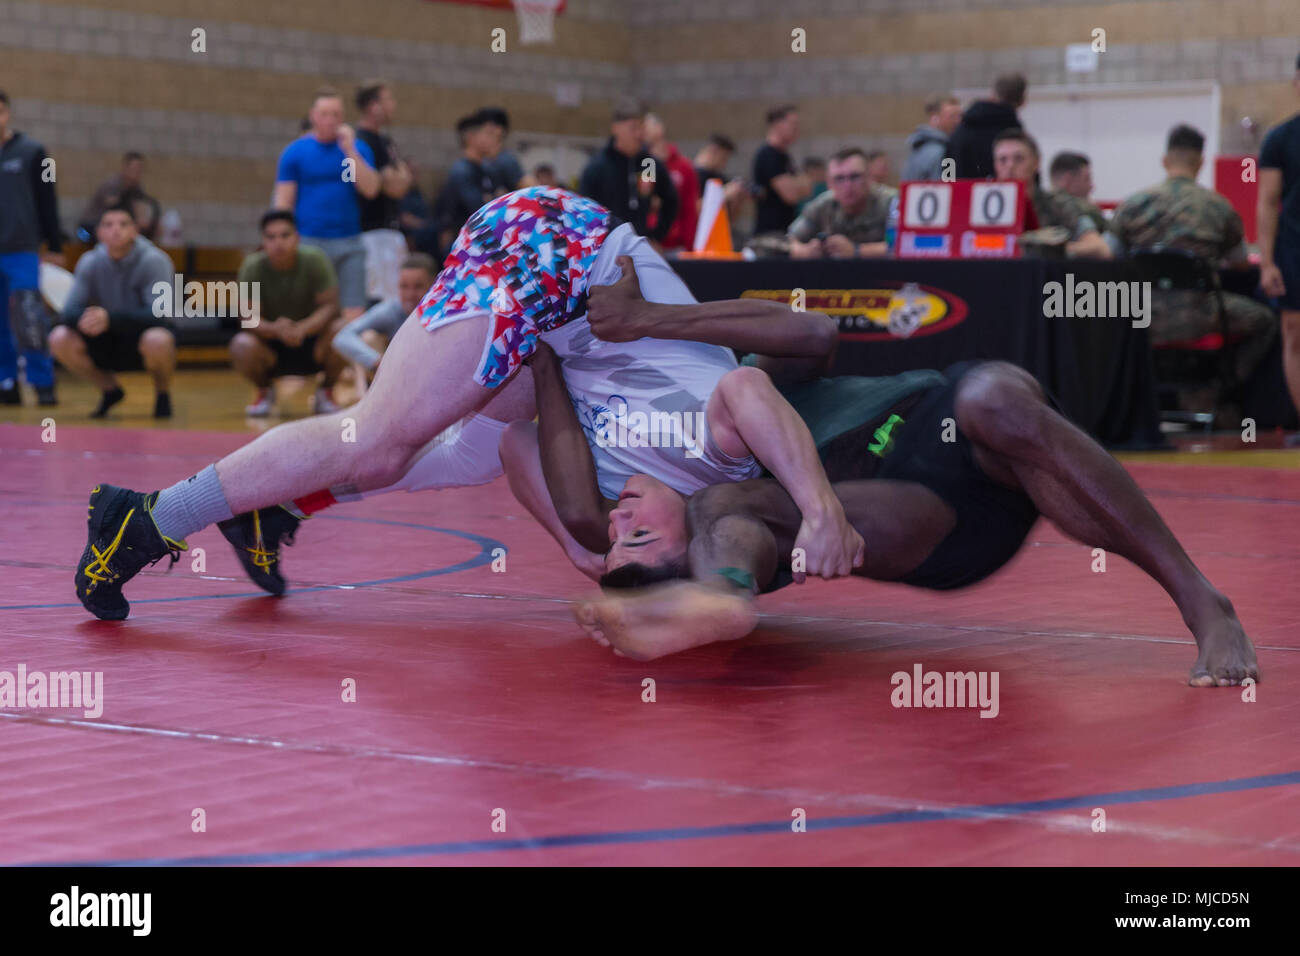 Submission Grappling Tournament Stock Photos & Submission Grappling